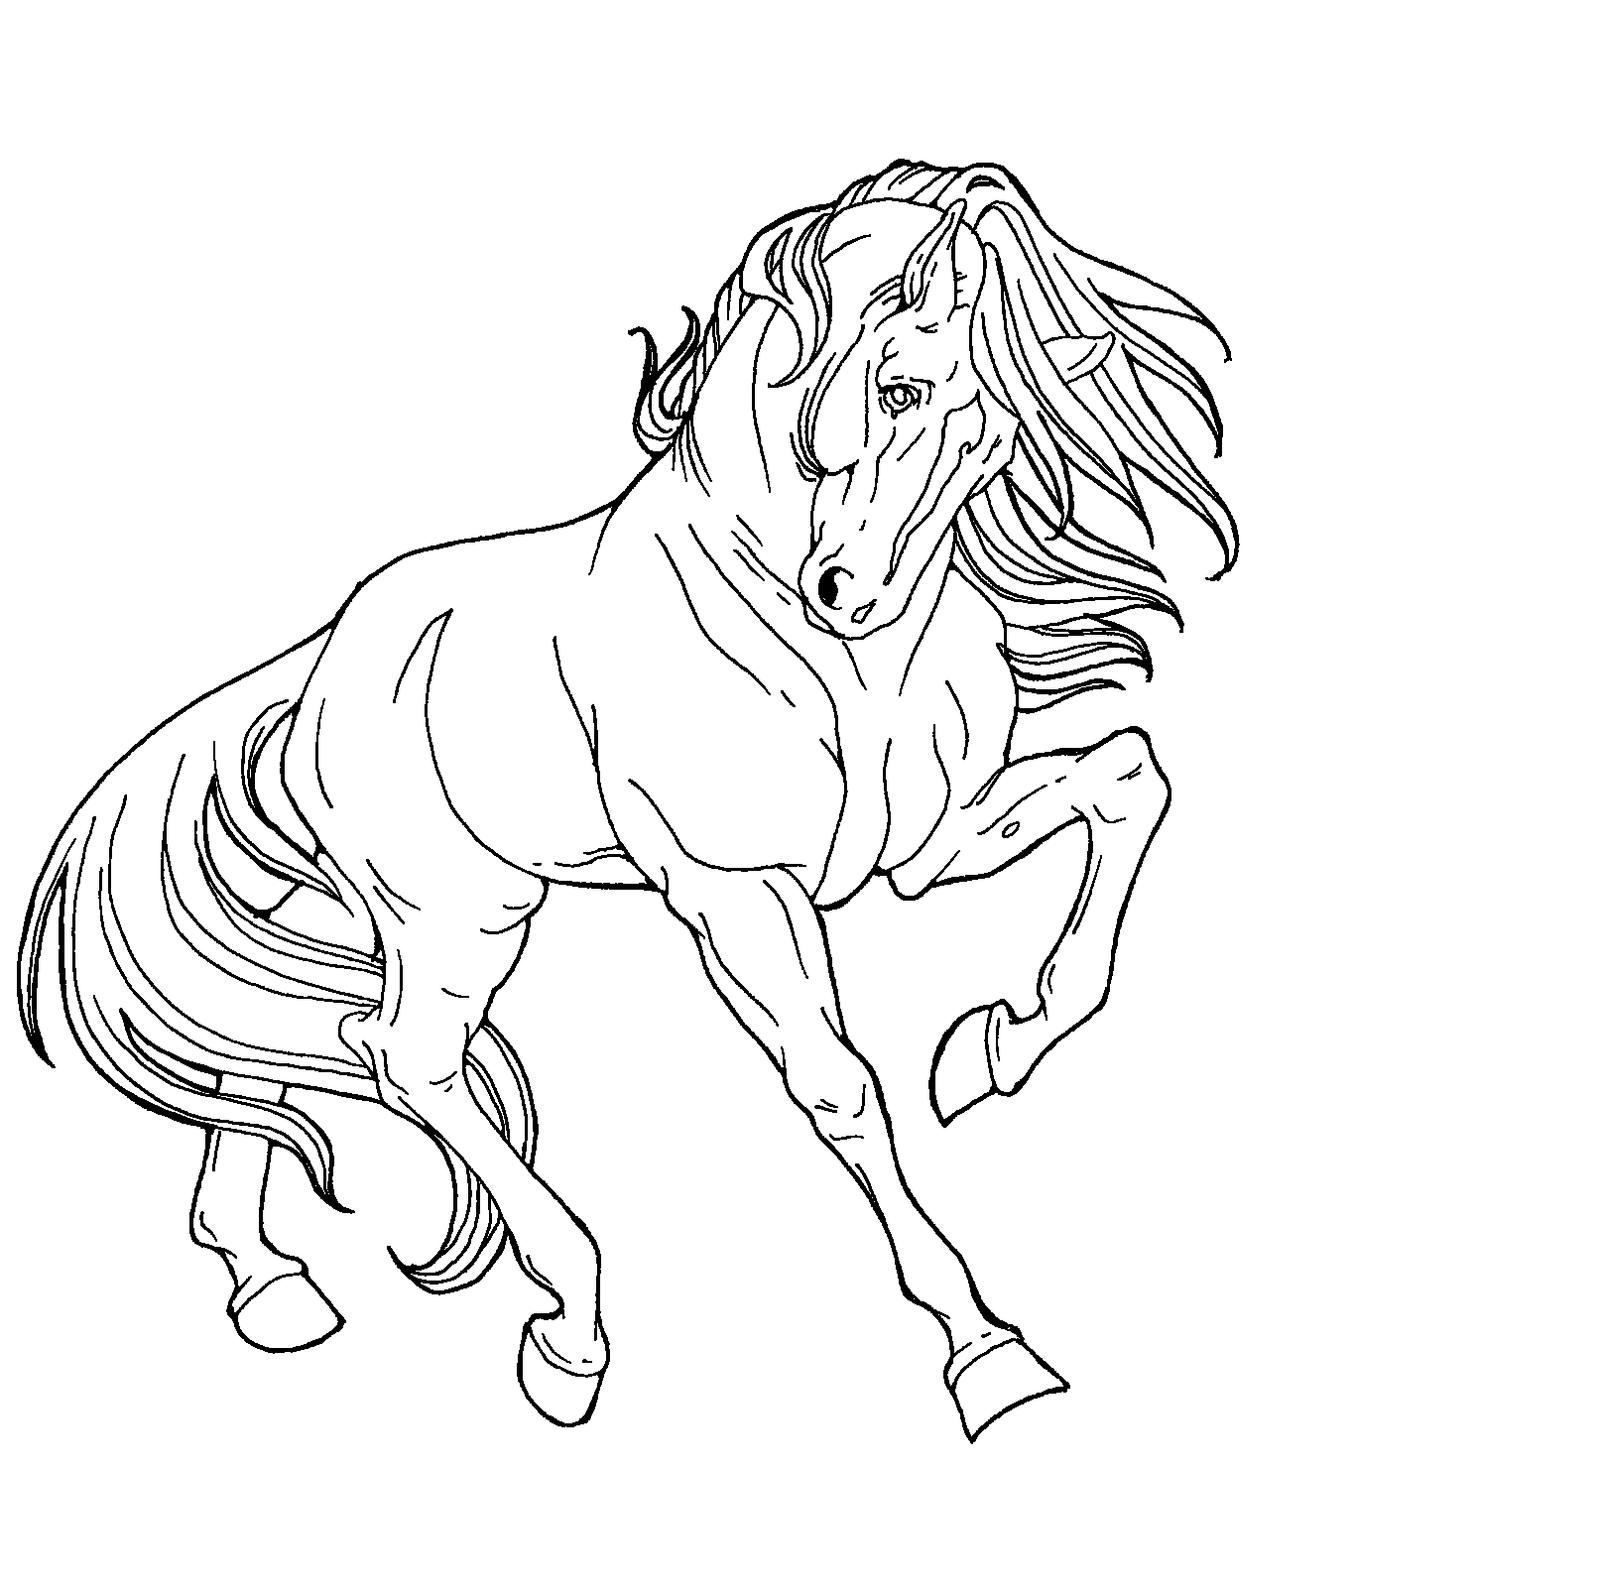 Free Line Art : Free line art proud horse by applehunter on deviantart